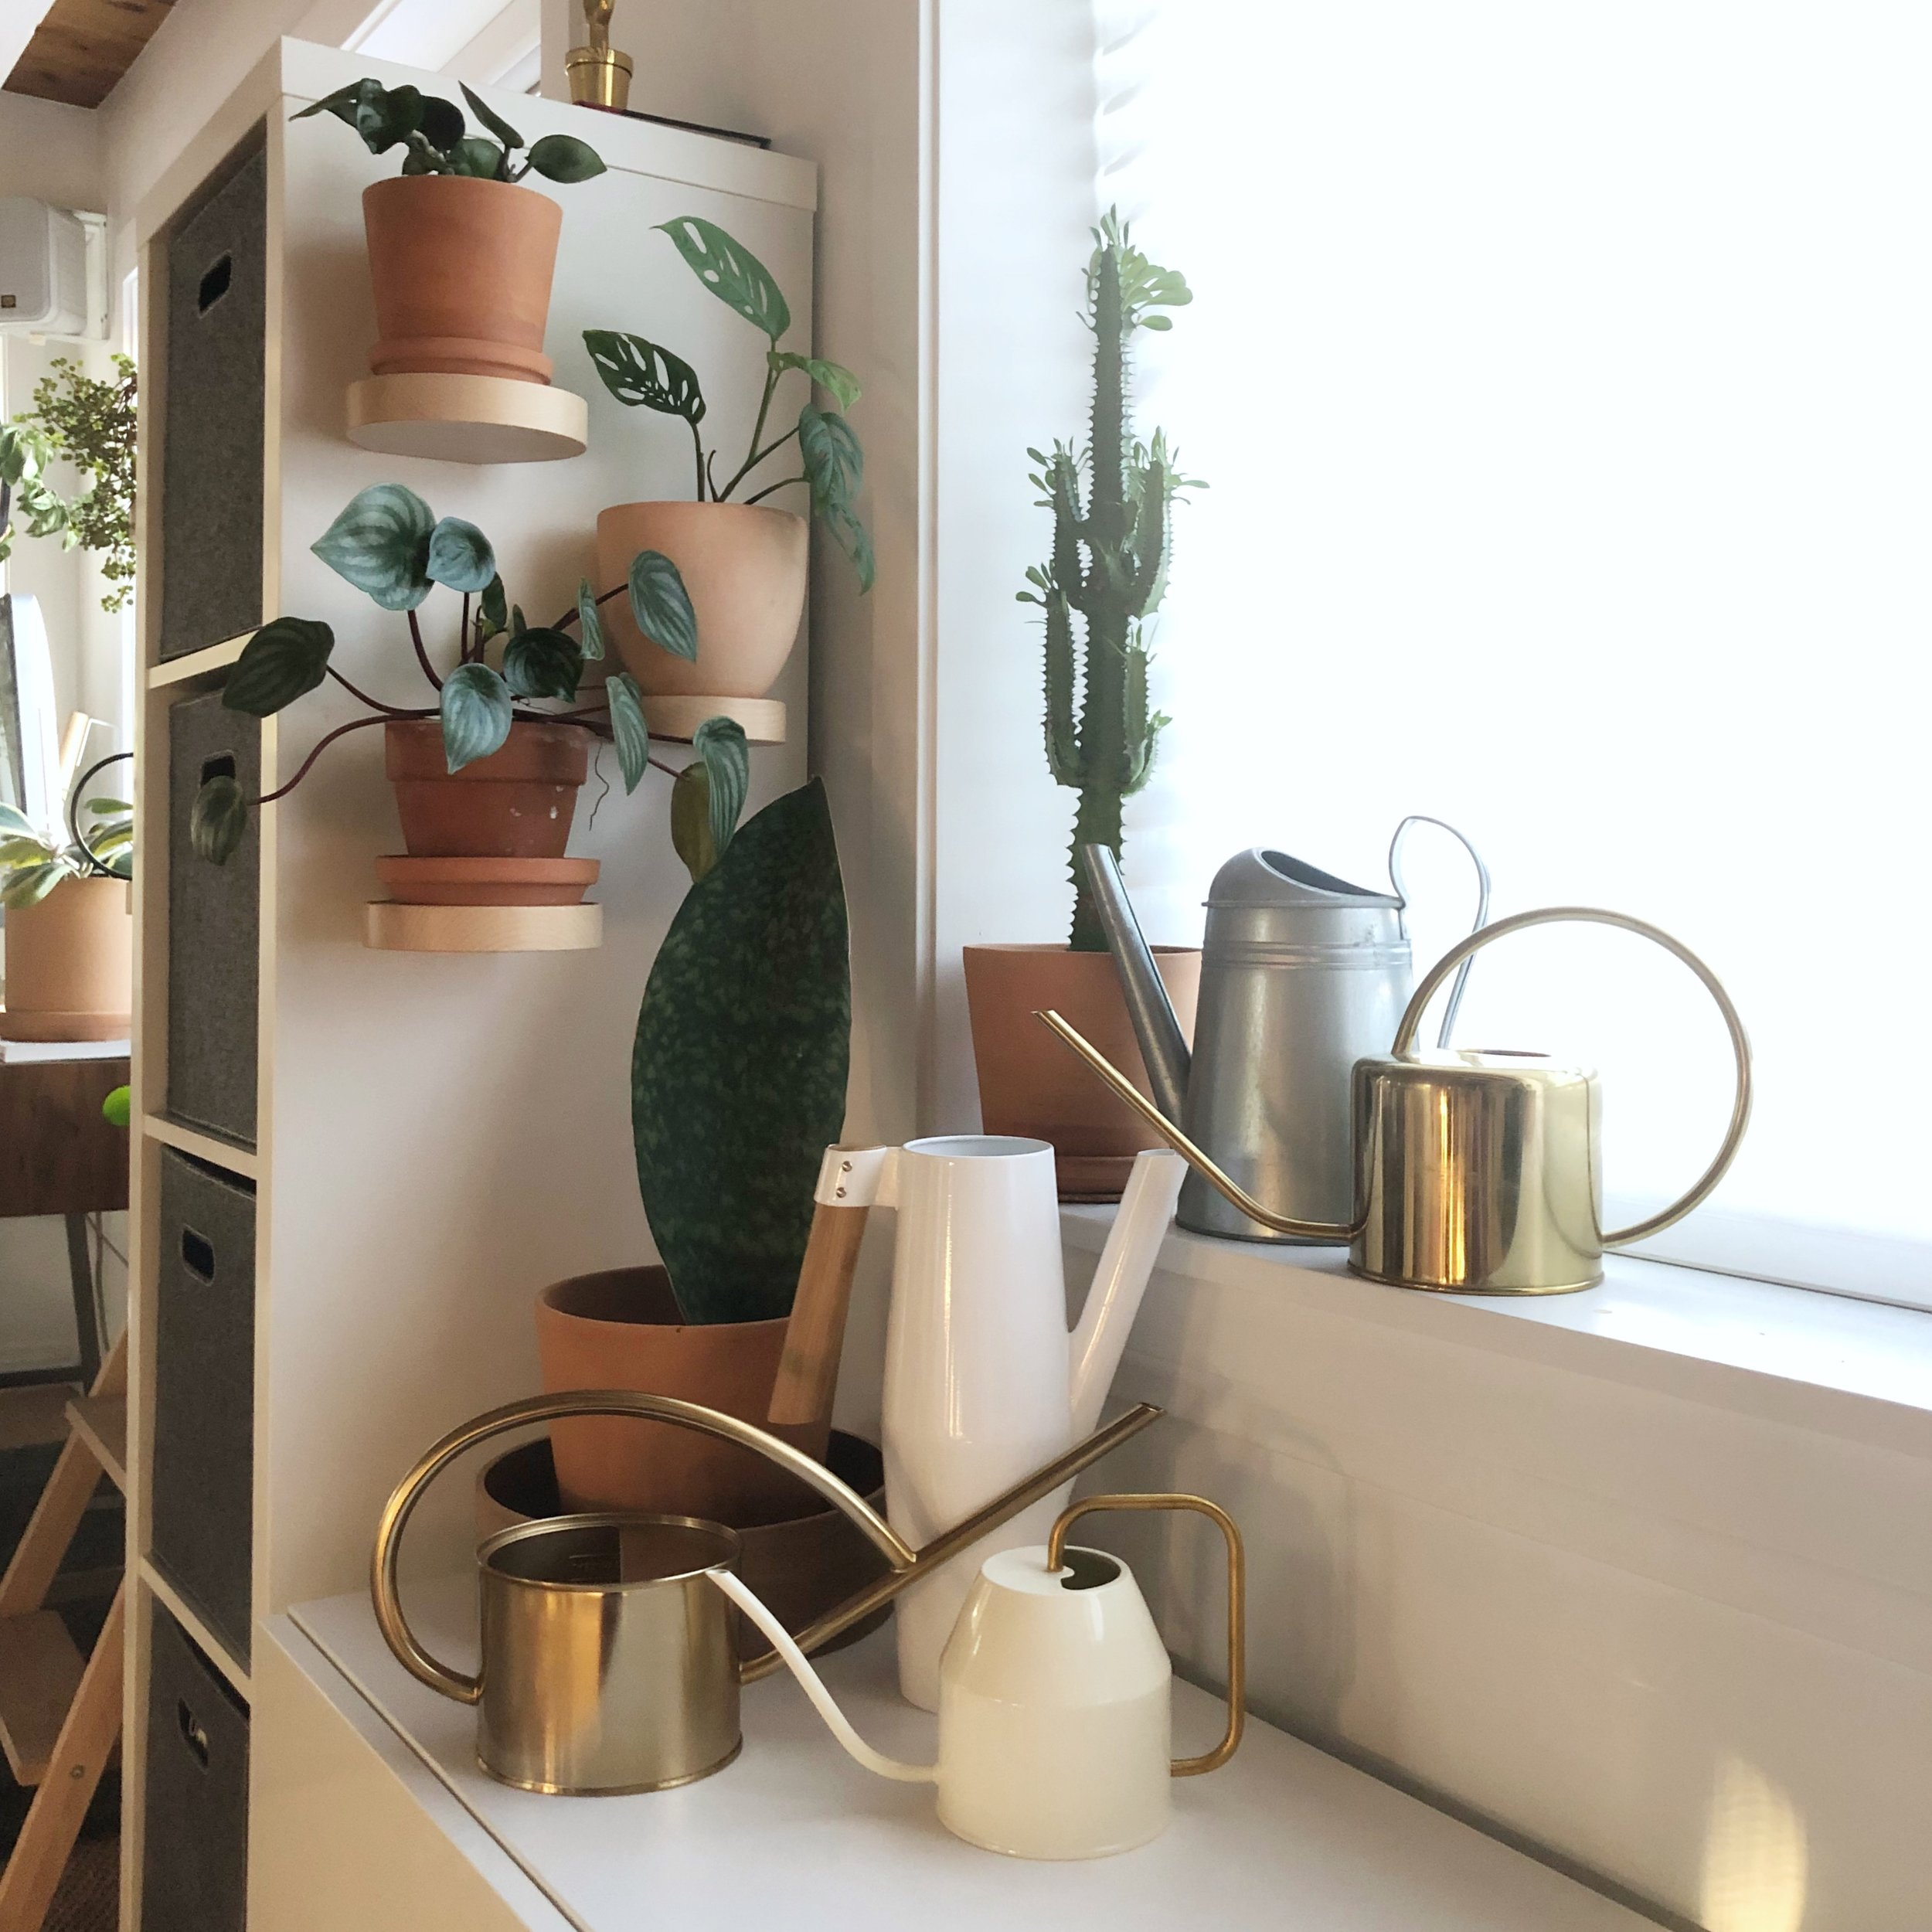 My collection of watering cans. I use them all - the larger ones I fill with filtered water from the garden hose (read on), bring inside then fill the smaller ones. I prefer the smaller, long narrow spout for watering container plants.